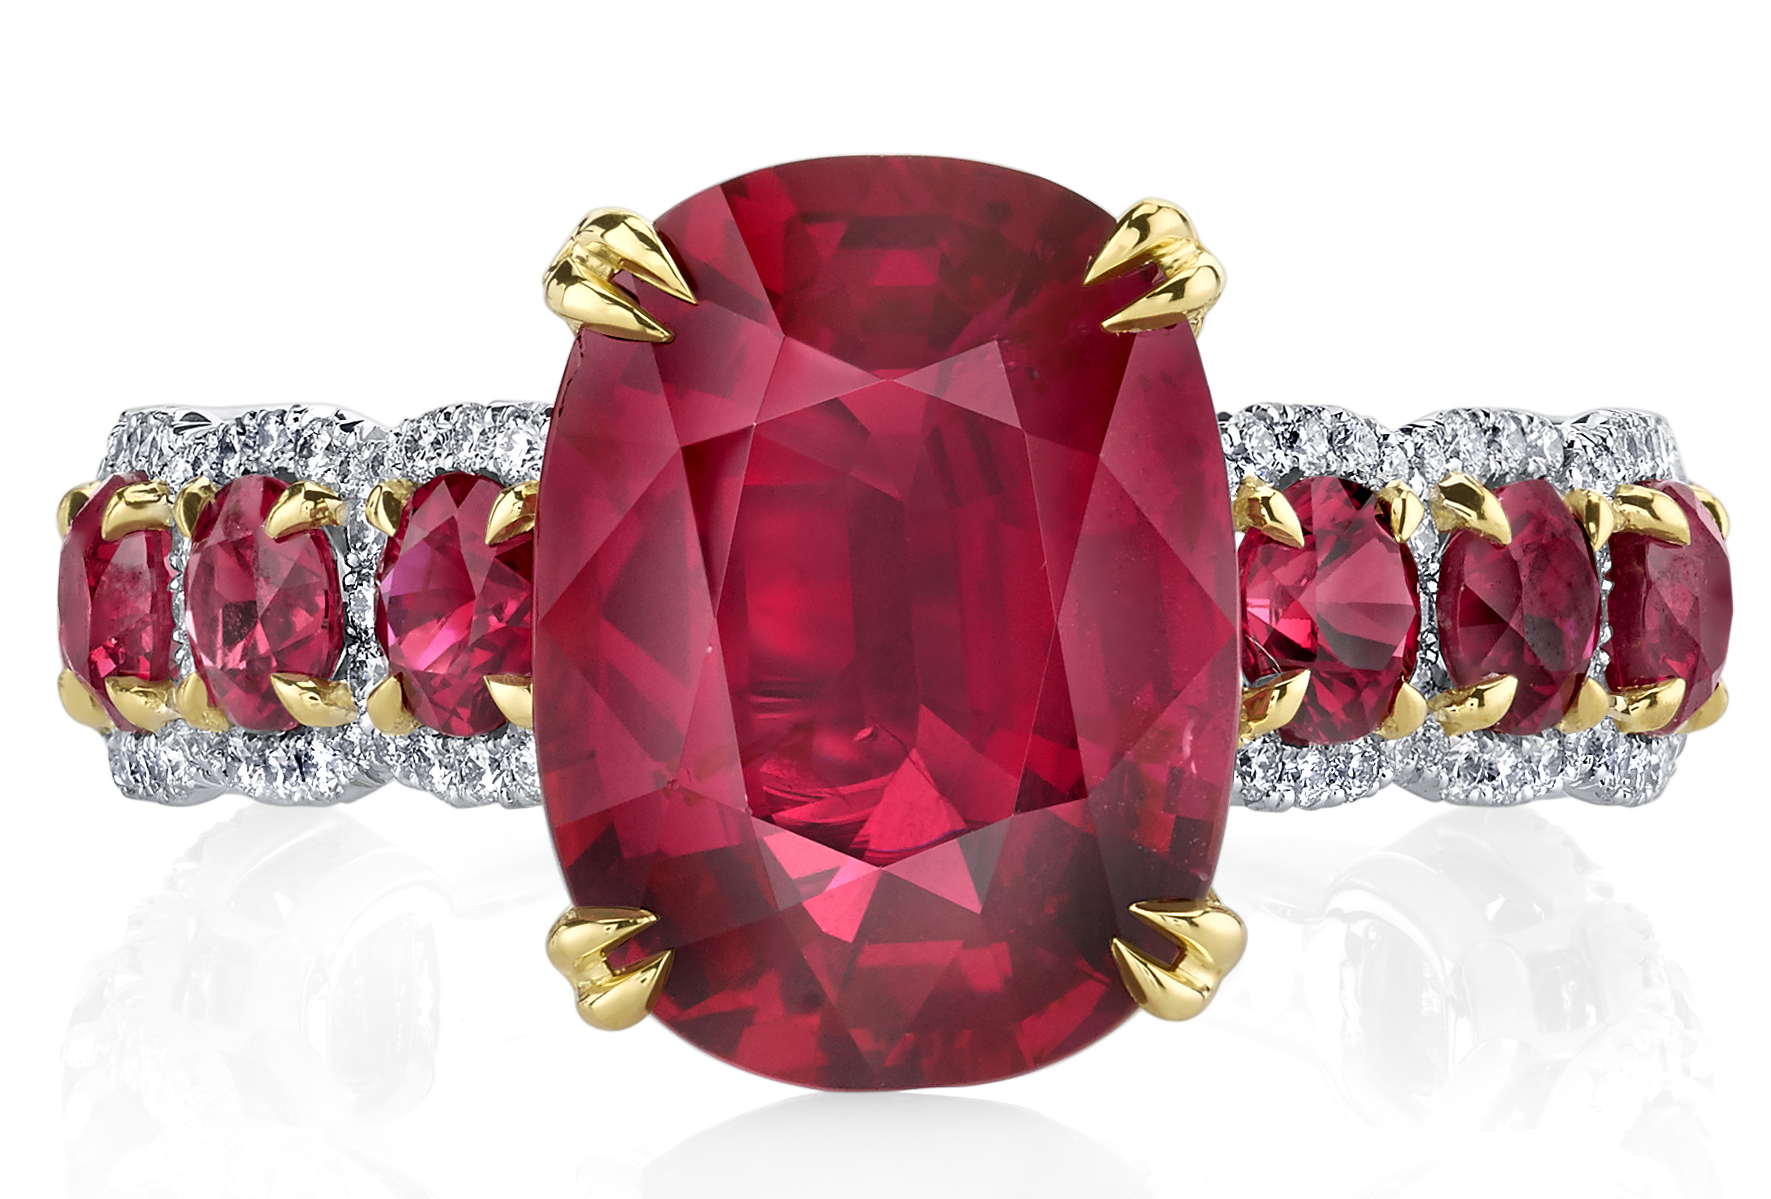 of ring bijoux diamond jewelry in gemstone passion and sonal style ravishing how floral to from ruby sonals s